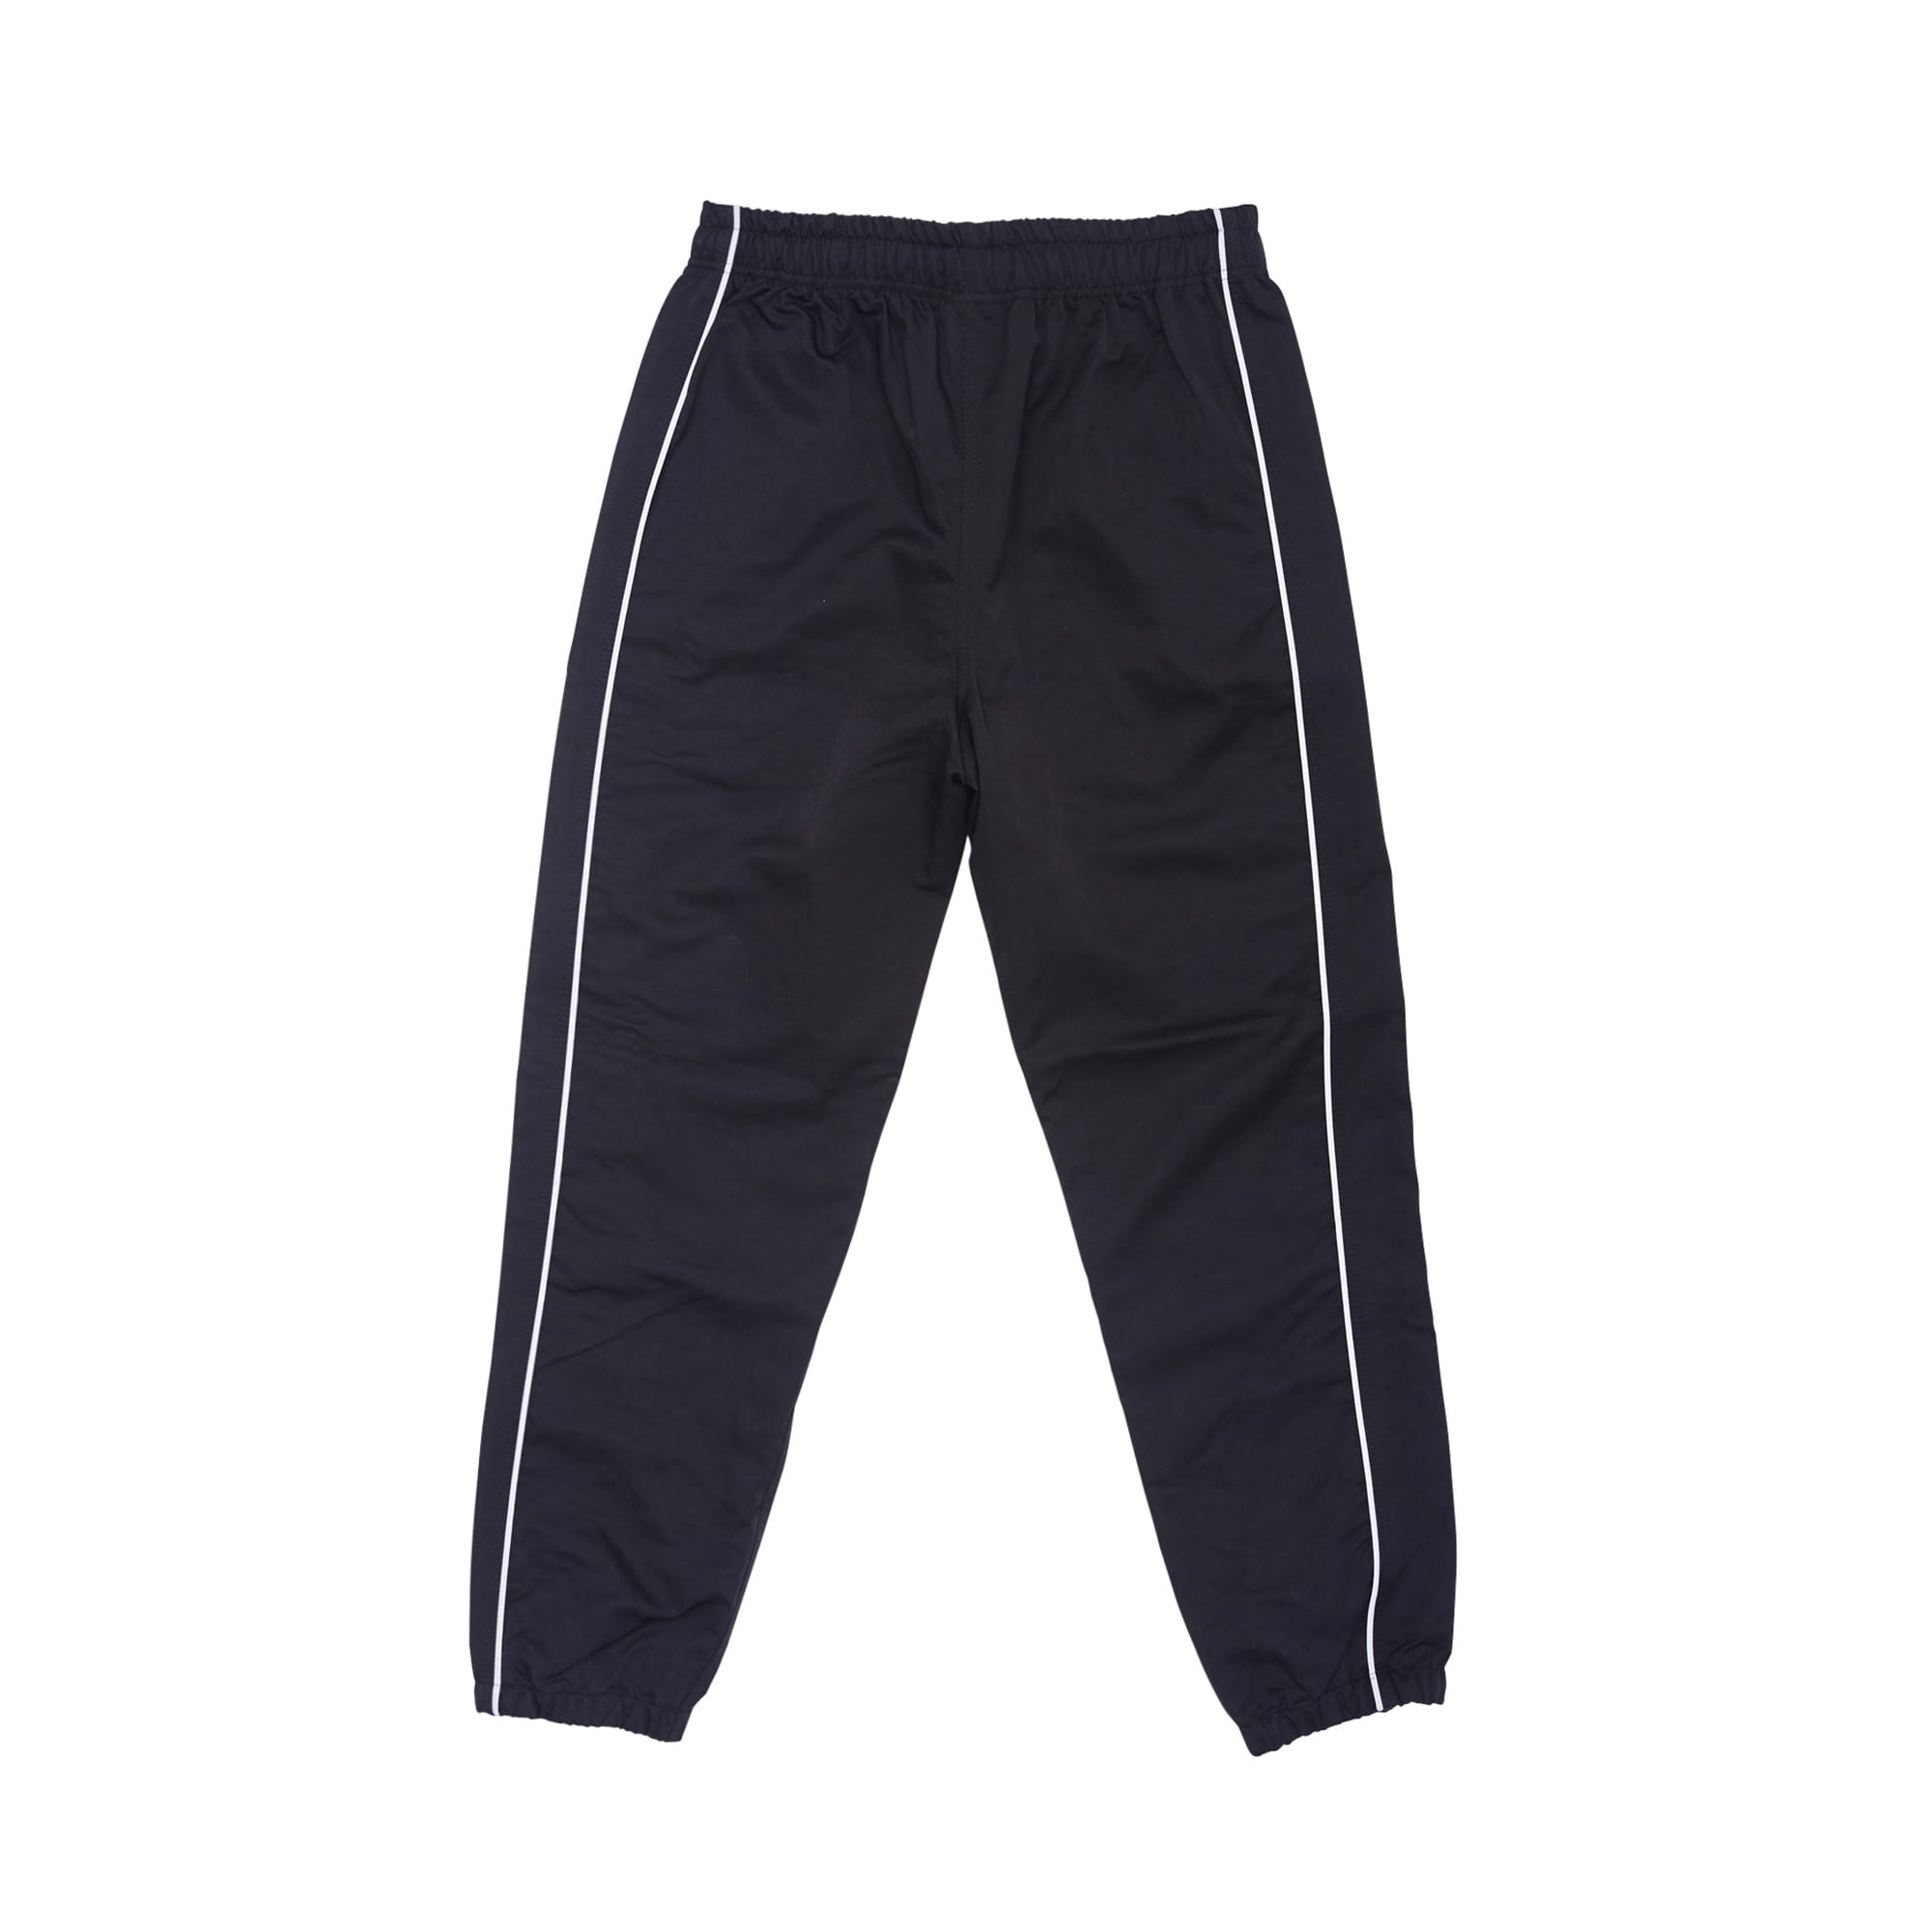 BSR WASHING TWILL JOGGER PANTS BLACK